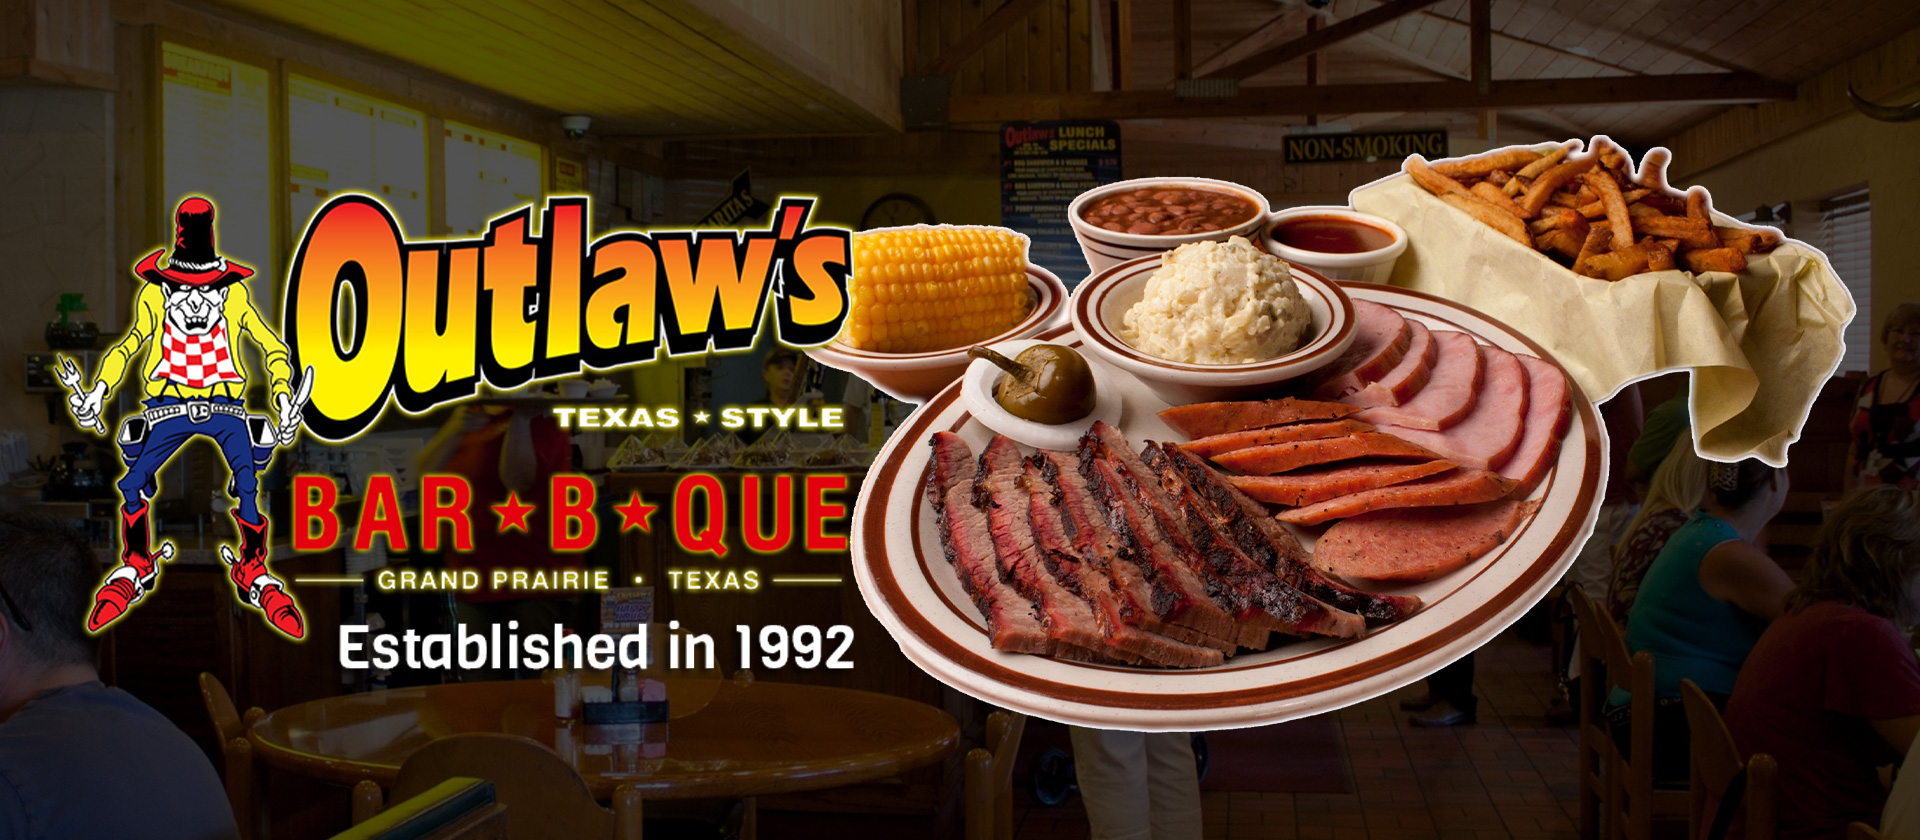 Outlaw's Barbeque - Texas Style BBQ